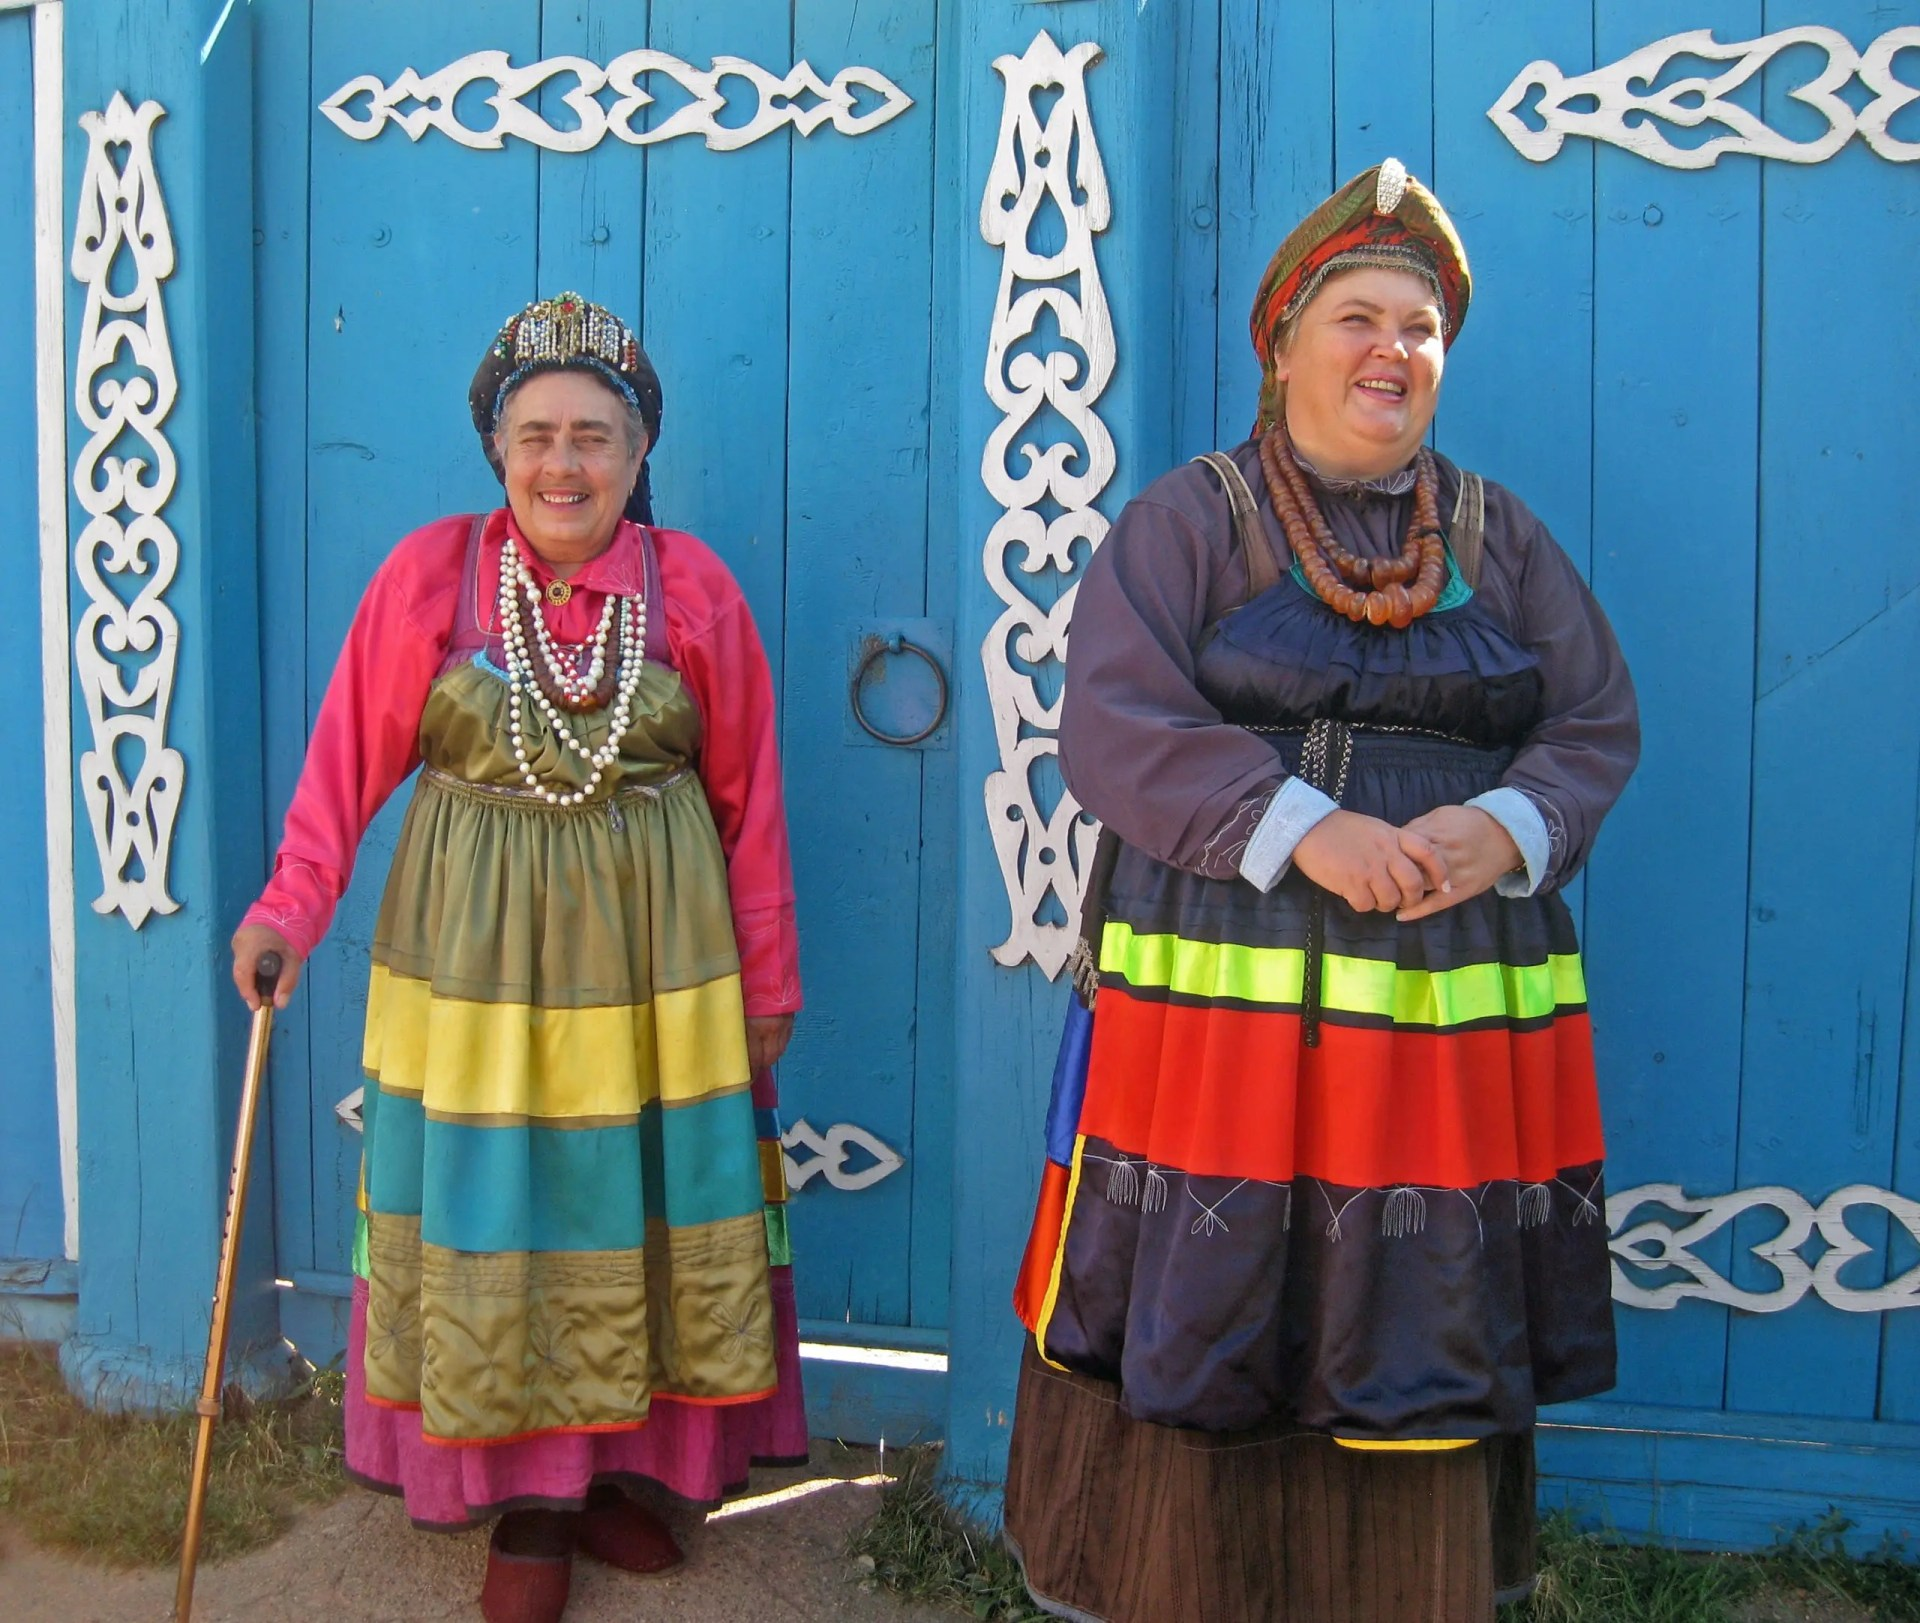 Russia's Old Believers were persecuted for their religious beliefs, and exiled to Siberia Photo: Helen Holter